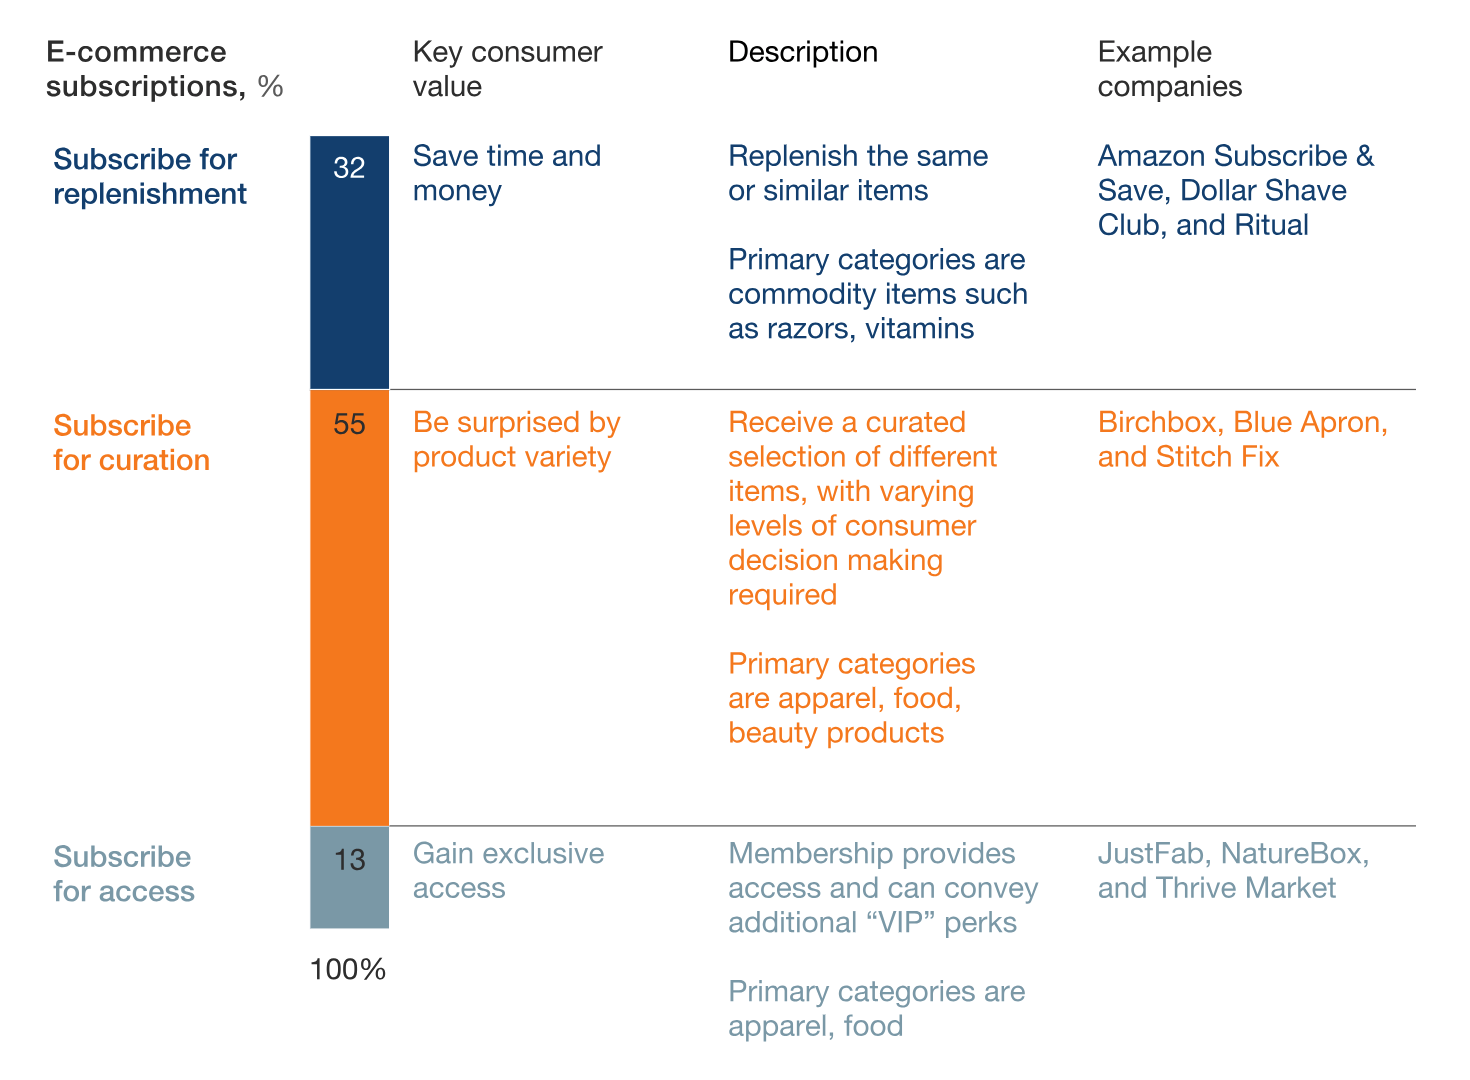 McKinsey's ecommerce subscription catagories